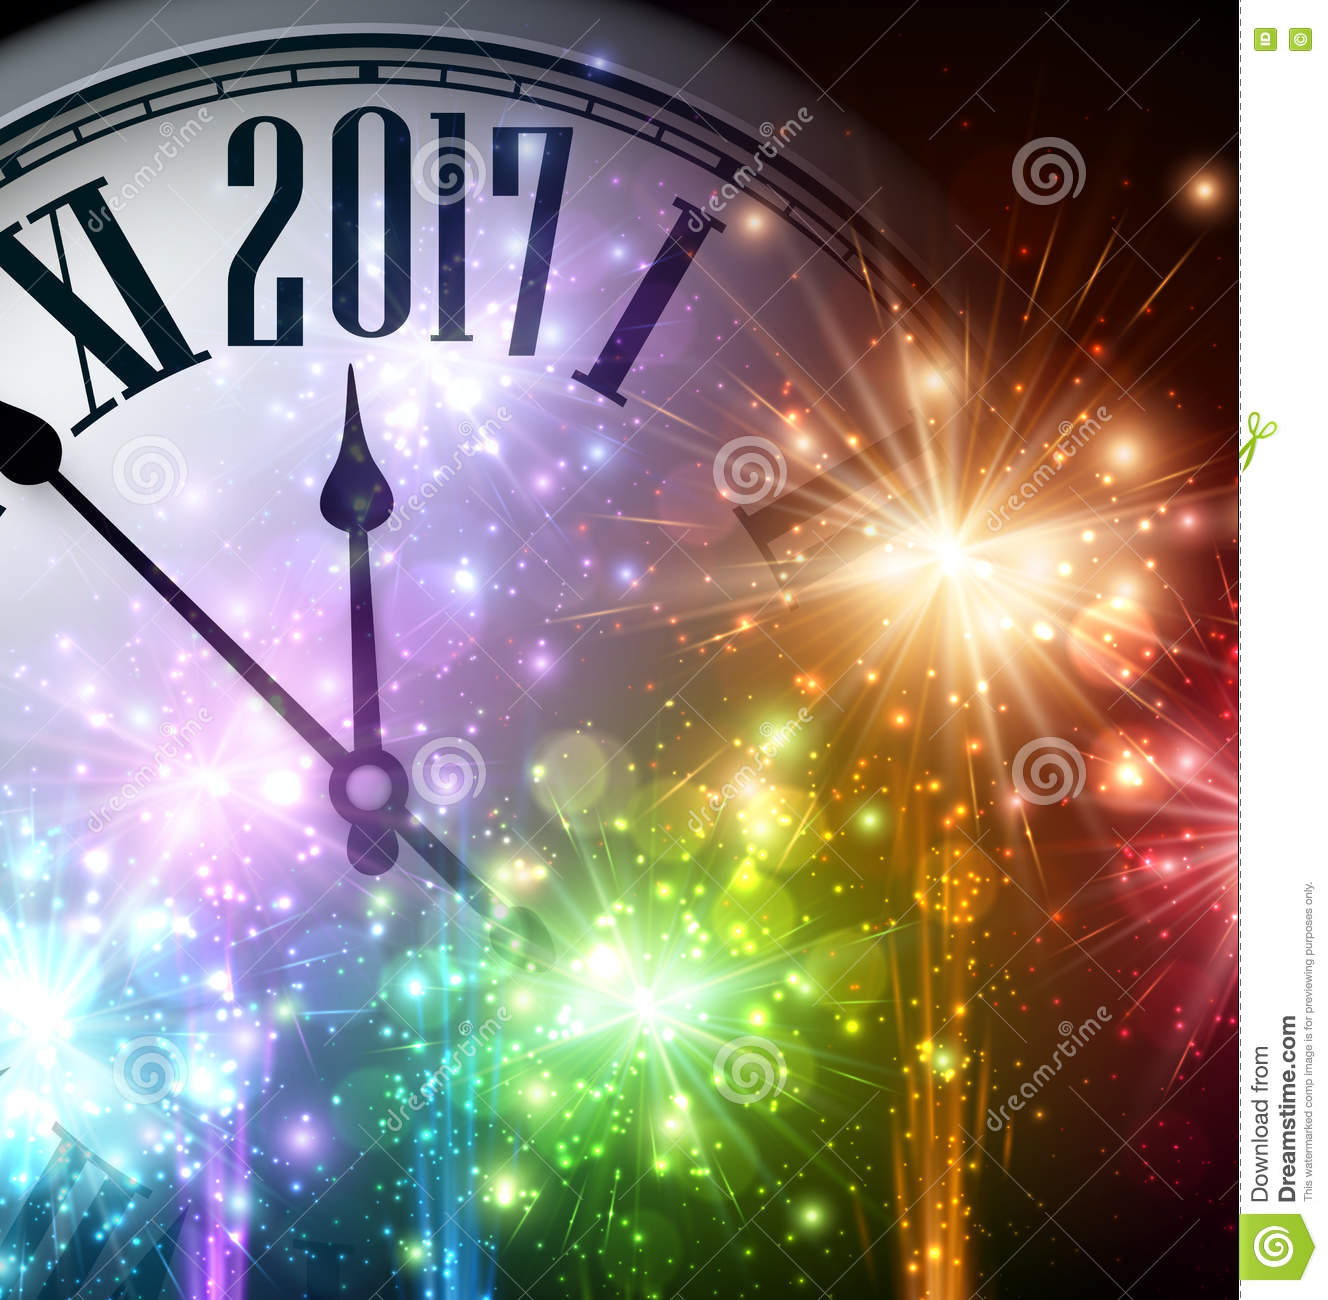 2017 new year background with clock